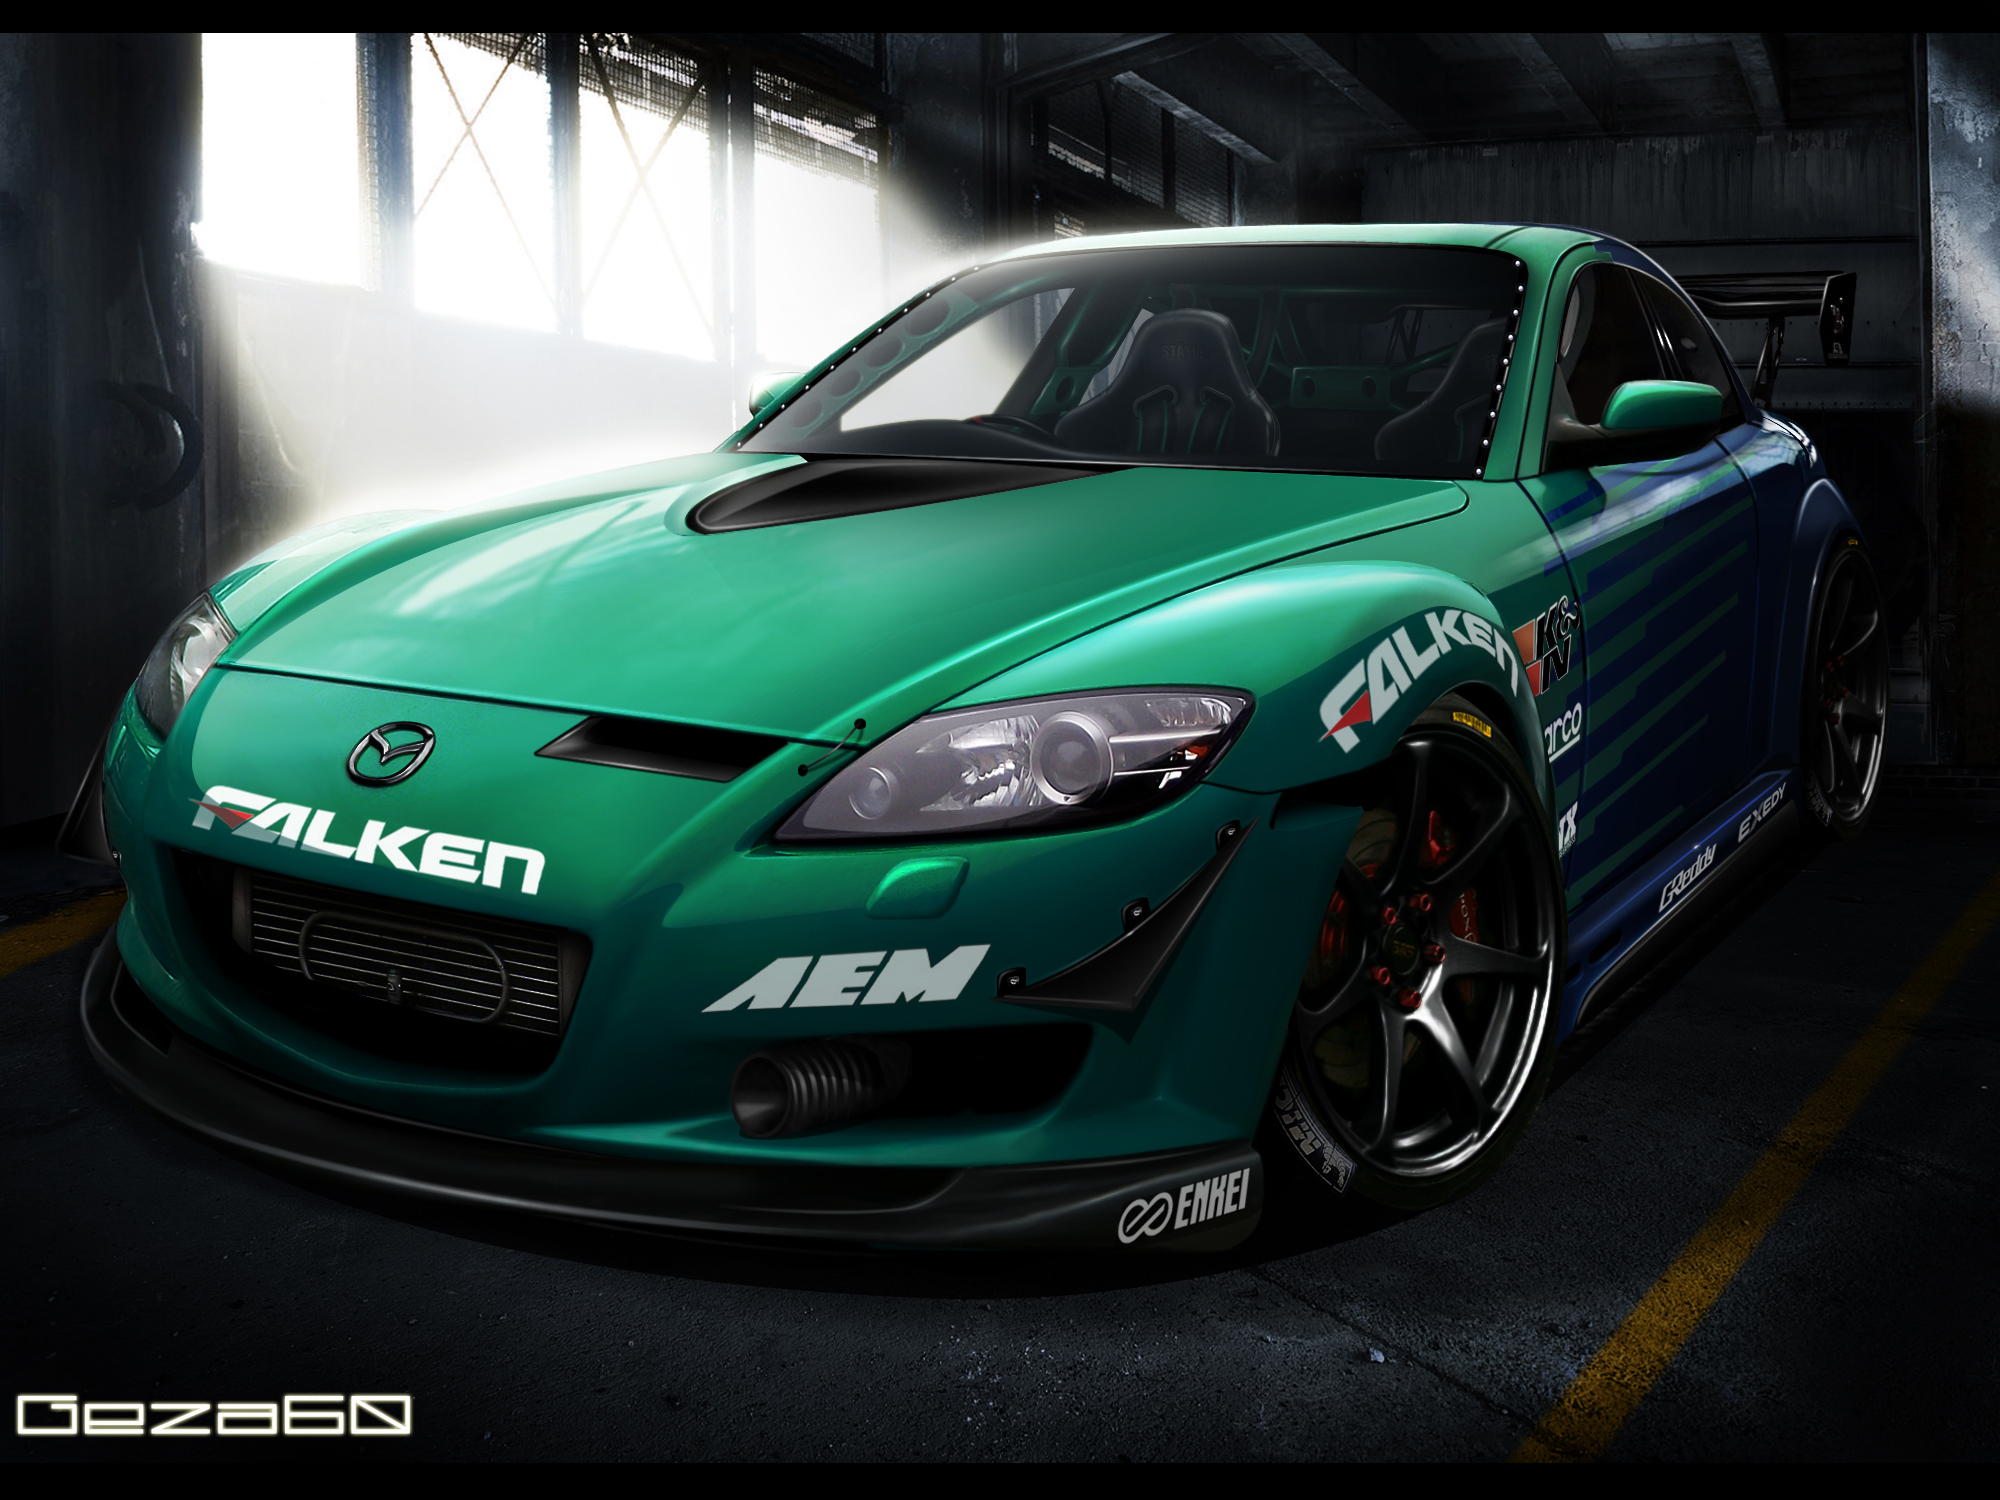 Mazda Rx8 Team Falken by Geza60